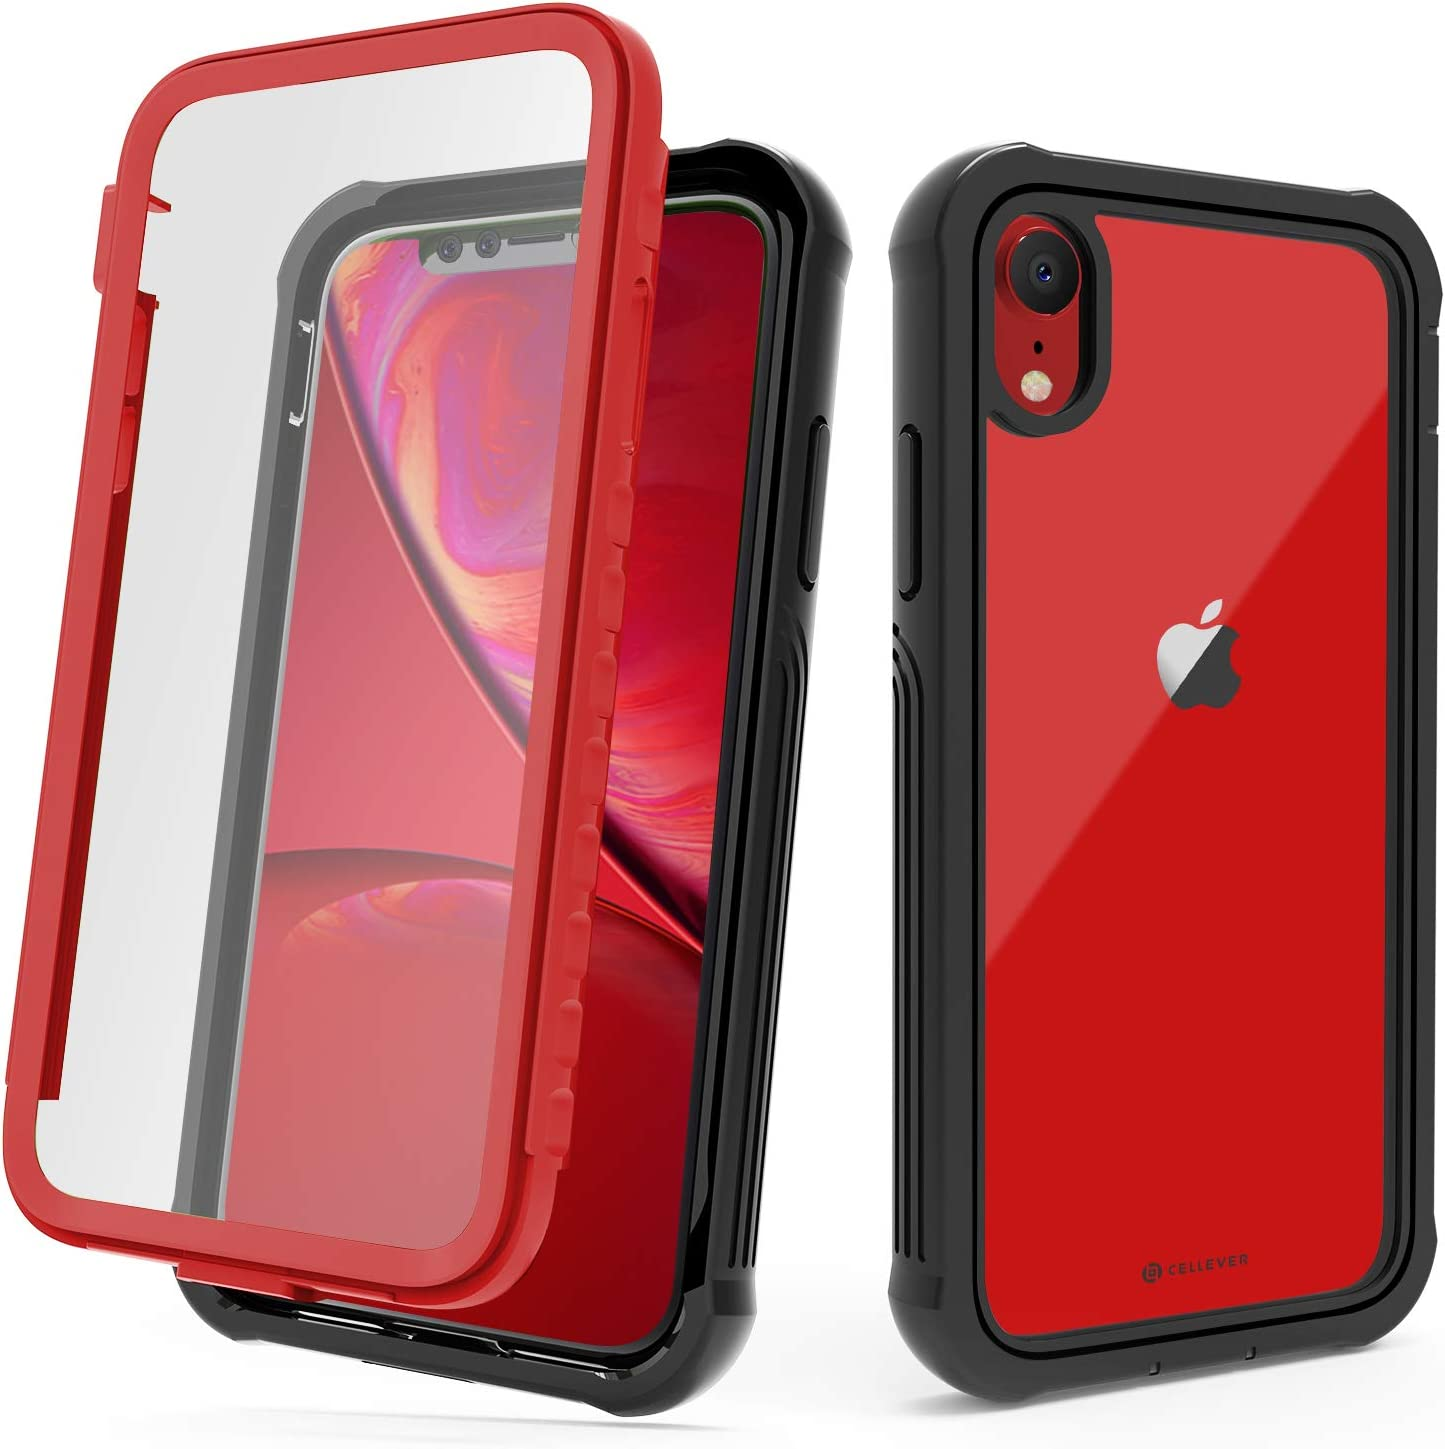 CellEver Compatible with iPhone XR Case, Heavy Duty Clear Full-Body Protective Transparent Cover with Soft Shock Absorbing TPU Bumper and Built-in Screen Protector - Red